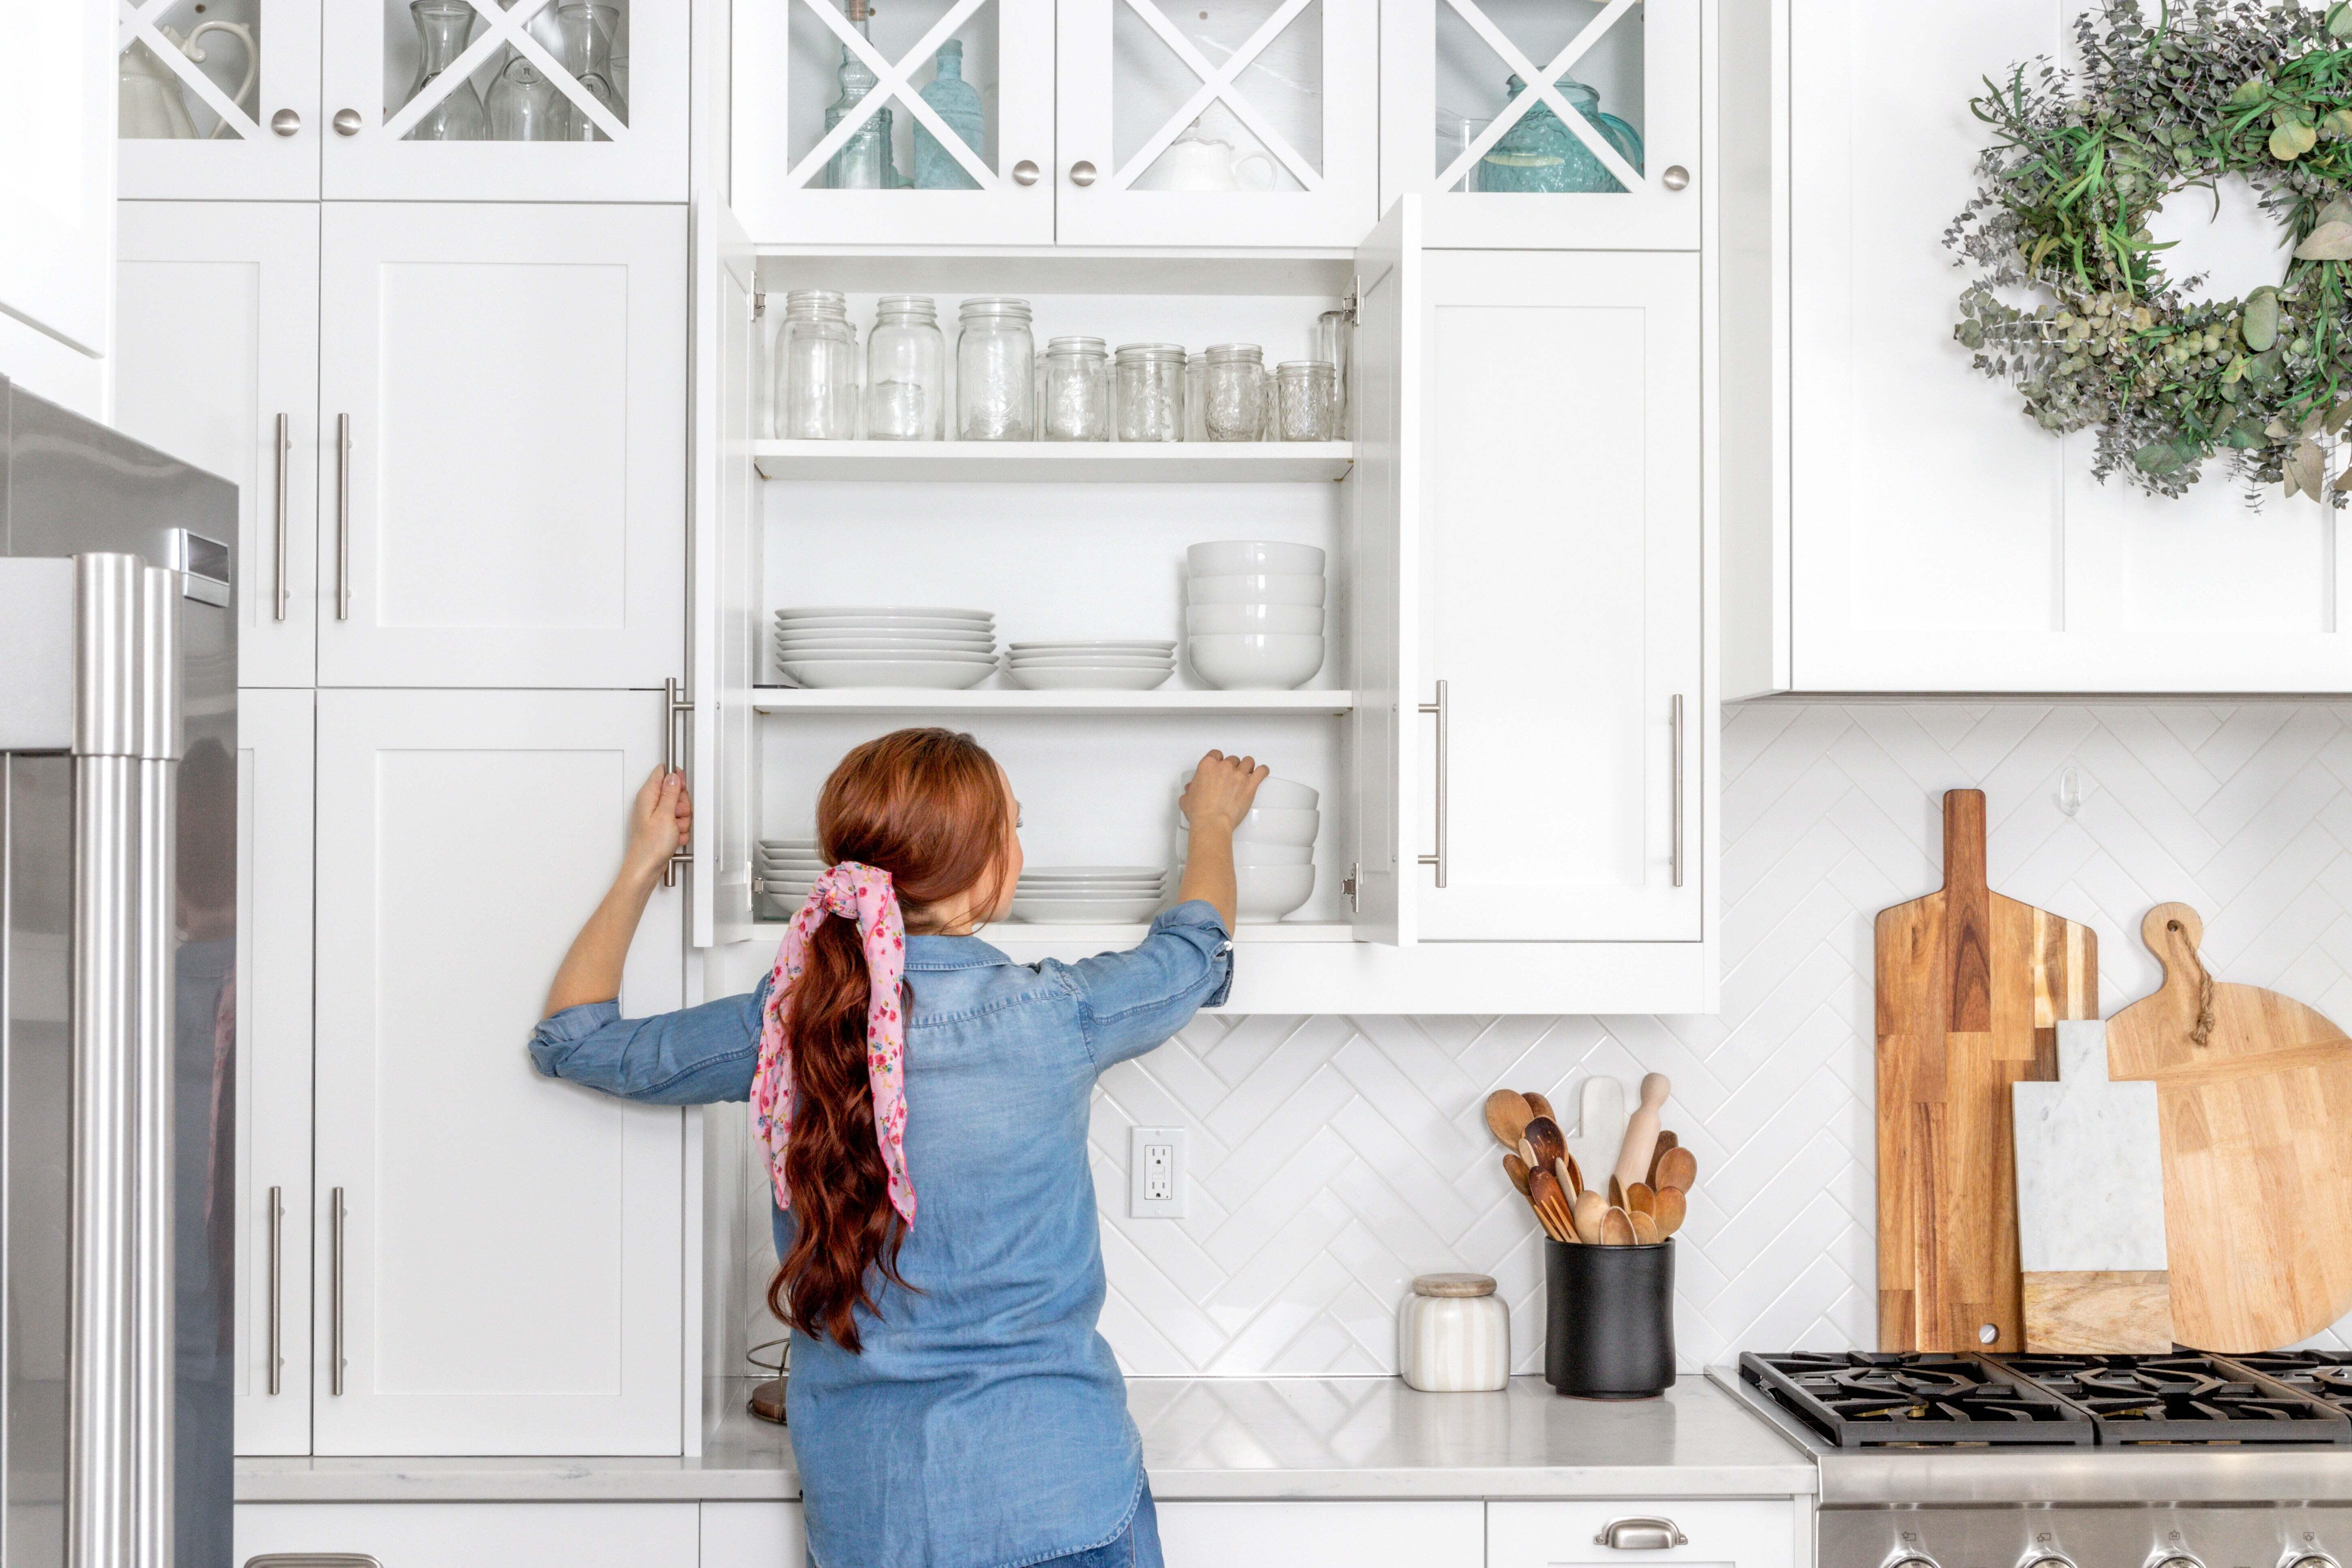 A woman is taking out a bowl from her kitchen cabinets.